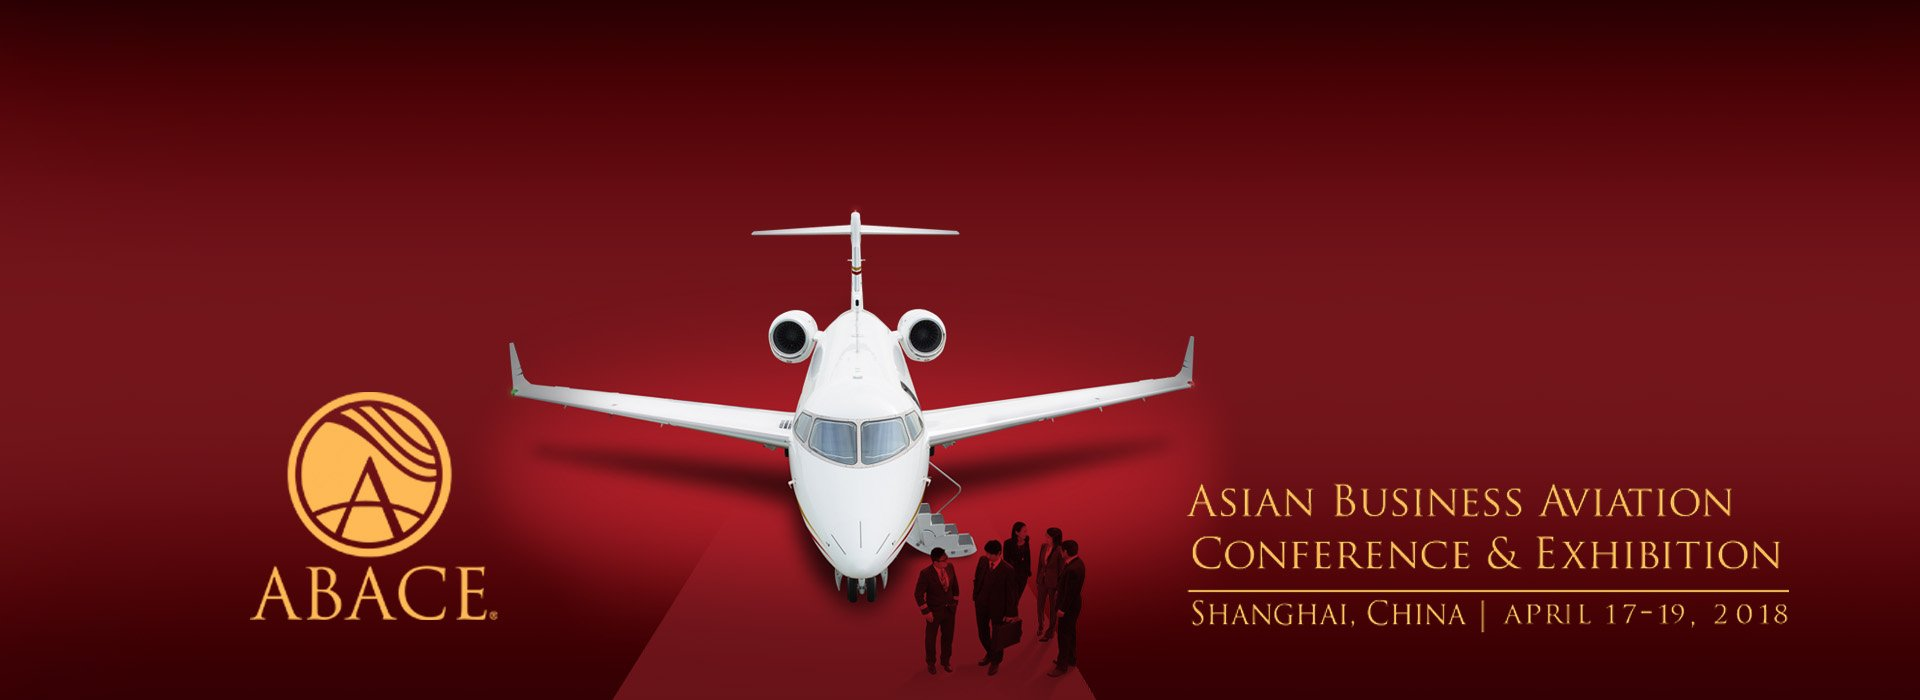 EURO JET TO ATTEND ABACE IN SHANGHAI